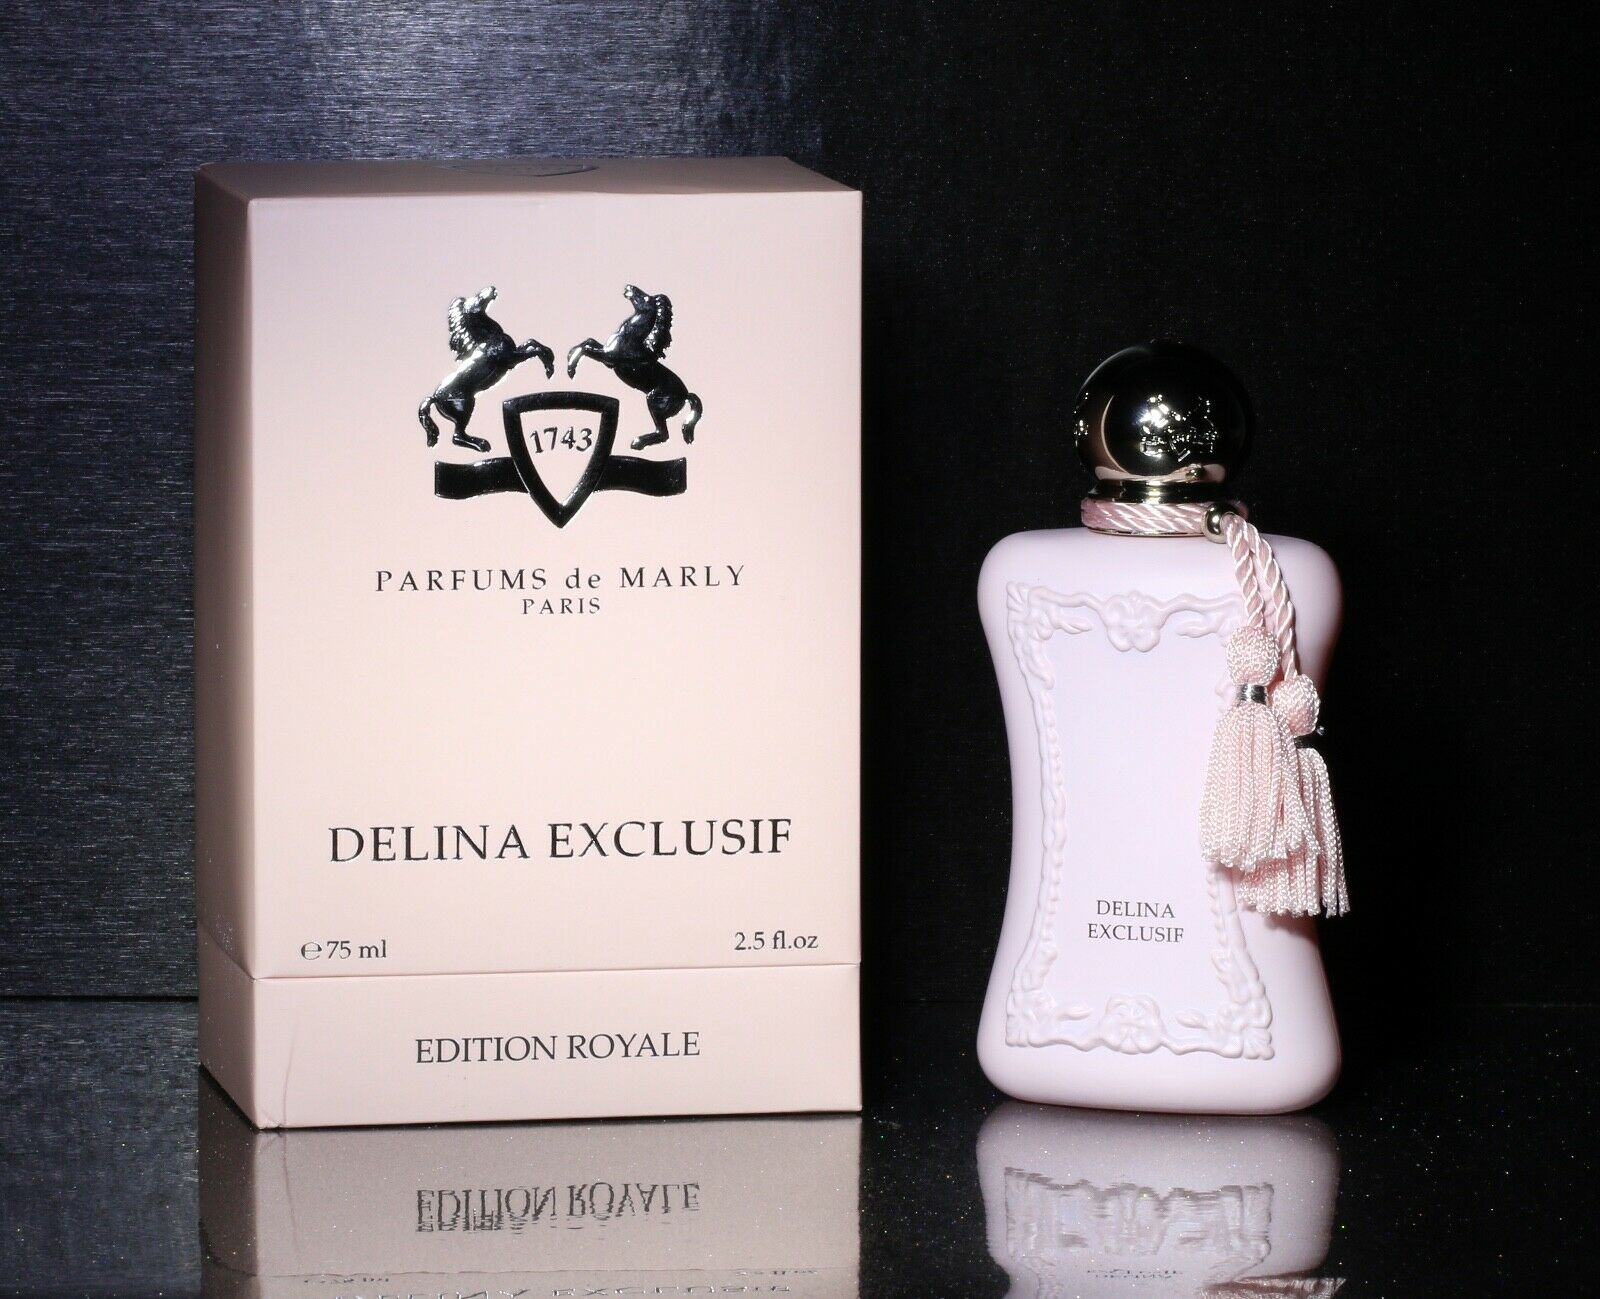 Parfums De Marly Delina Exclusif - 1ml, 2ml, 3ml, 5ml, 10ml TRAVEL SPR...